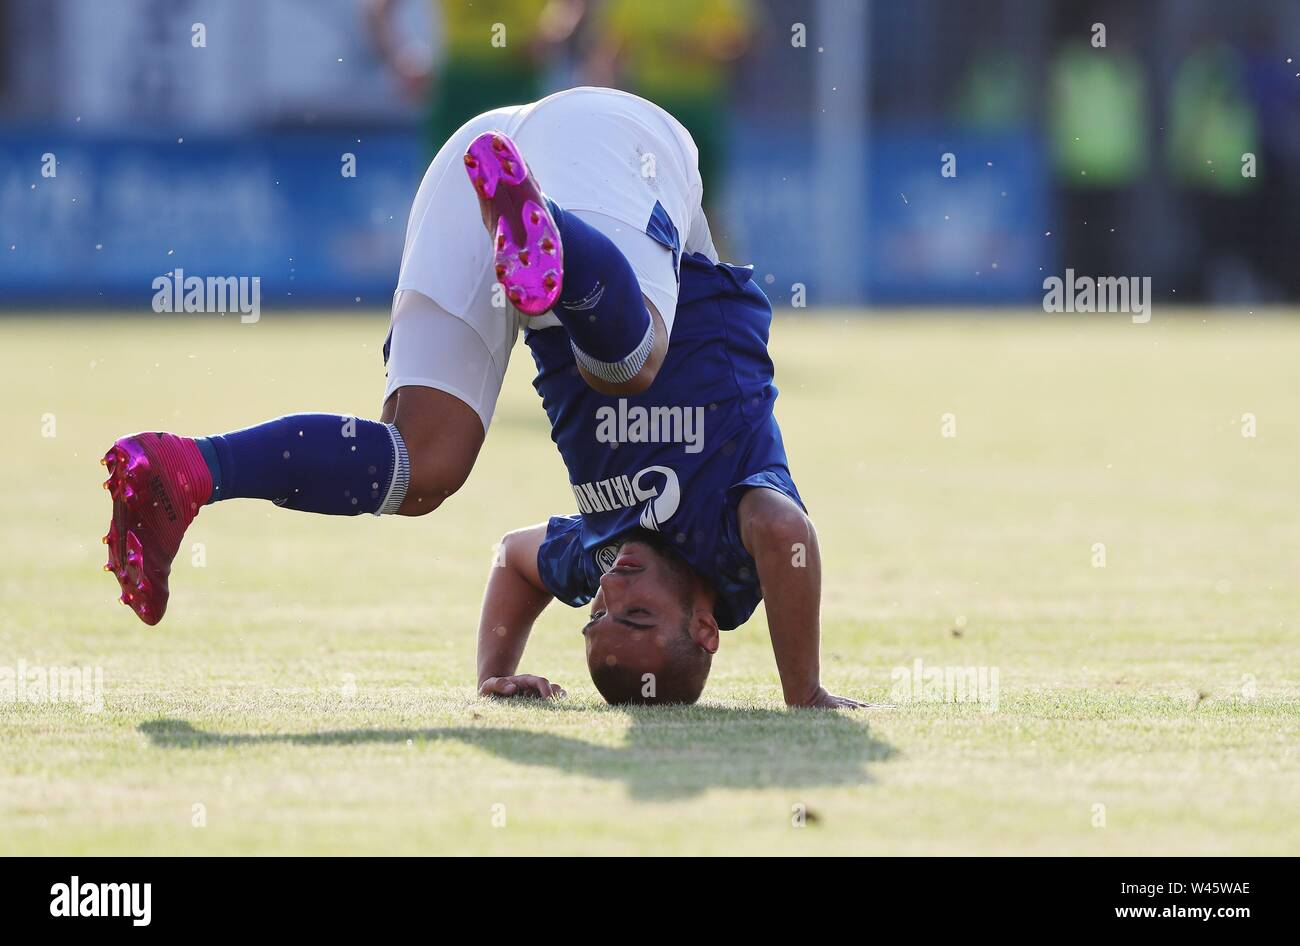 Lotte, Deutschland. 19th July, 2019. firo: 19.07.2019, football, 1.Bundesliga, season 2019/2020, friendly match, FC Schalke 04 - Norwich City Ahmed KUTUCU, Schalke, headstand, humor, funny, funny | usage worldwide Credit: dpa/Alamy Live News - Stock Image